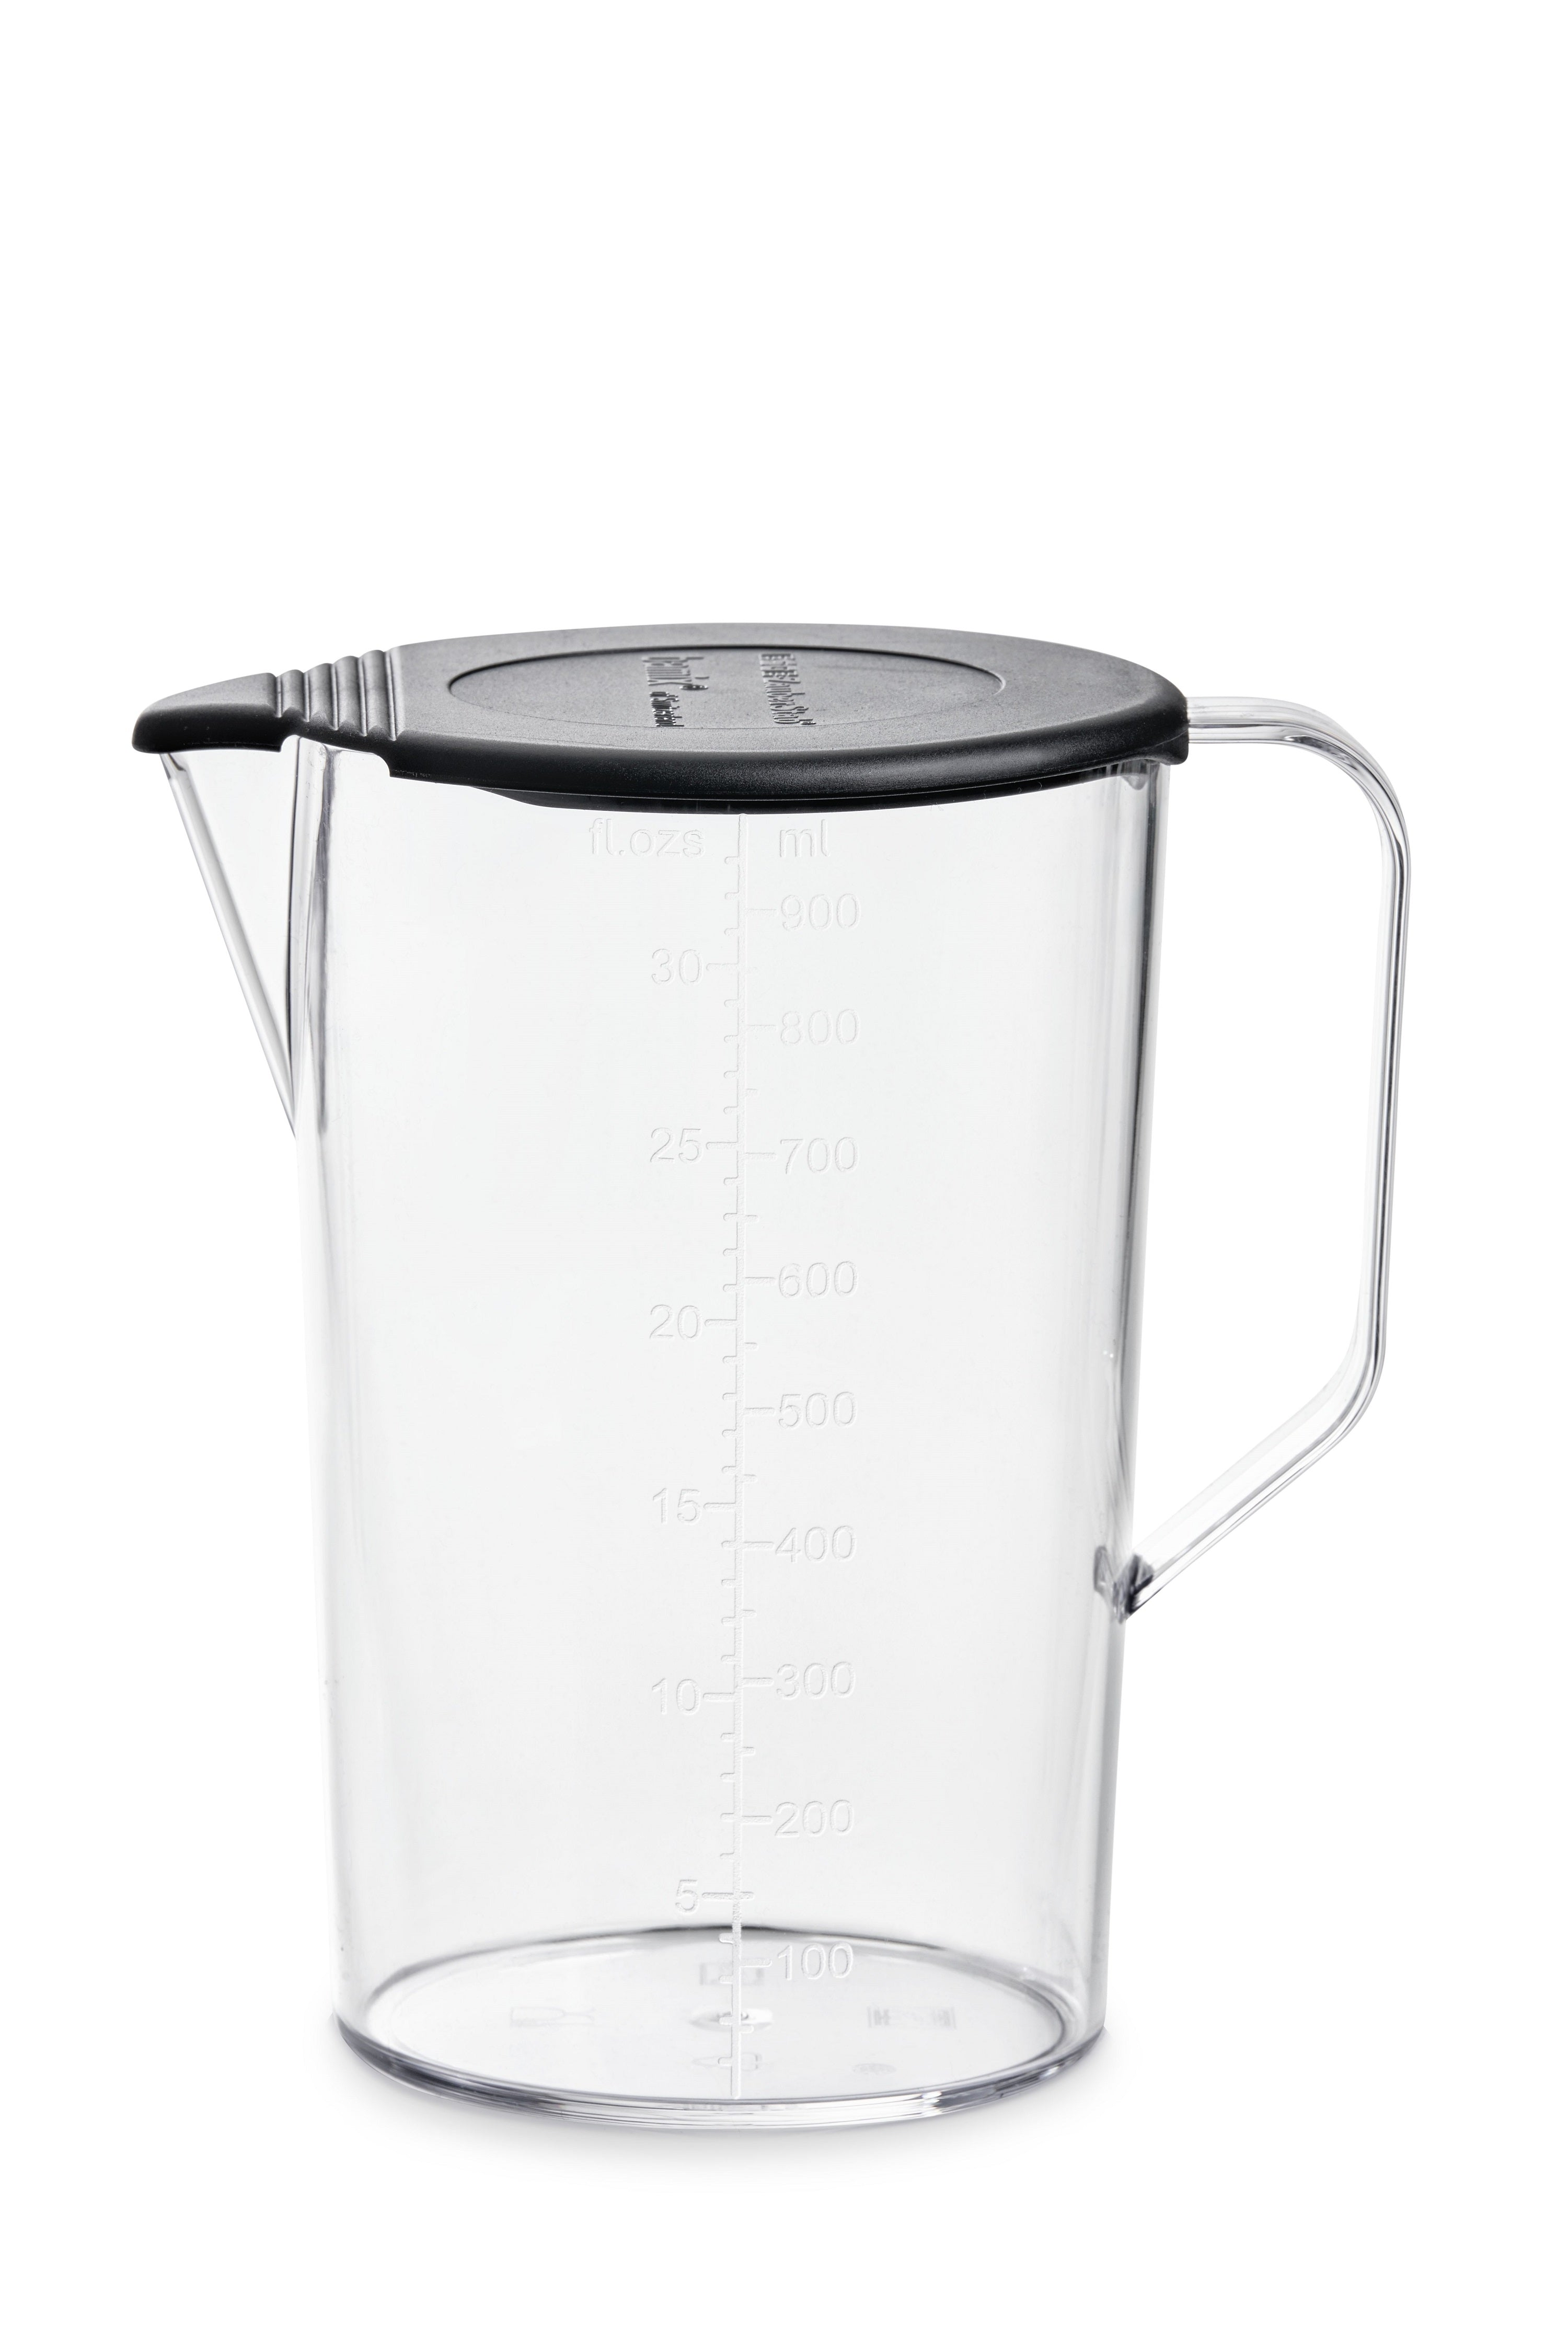 1000ml Jug with Lid